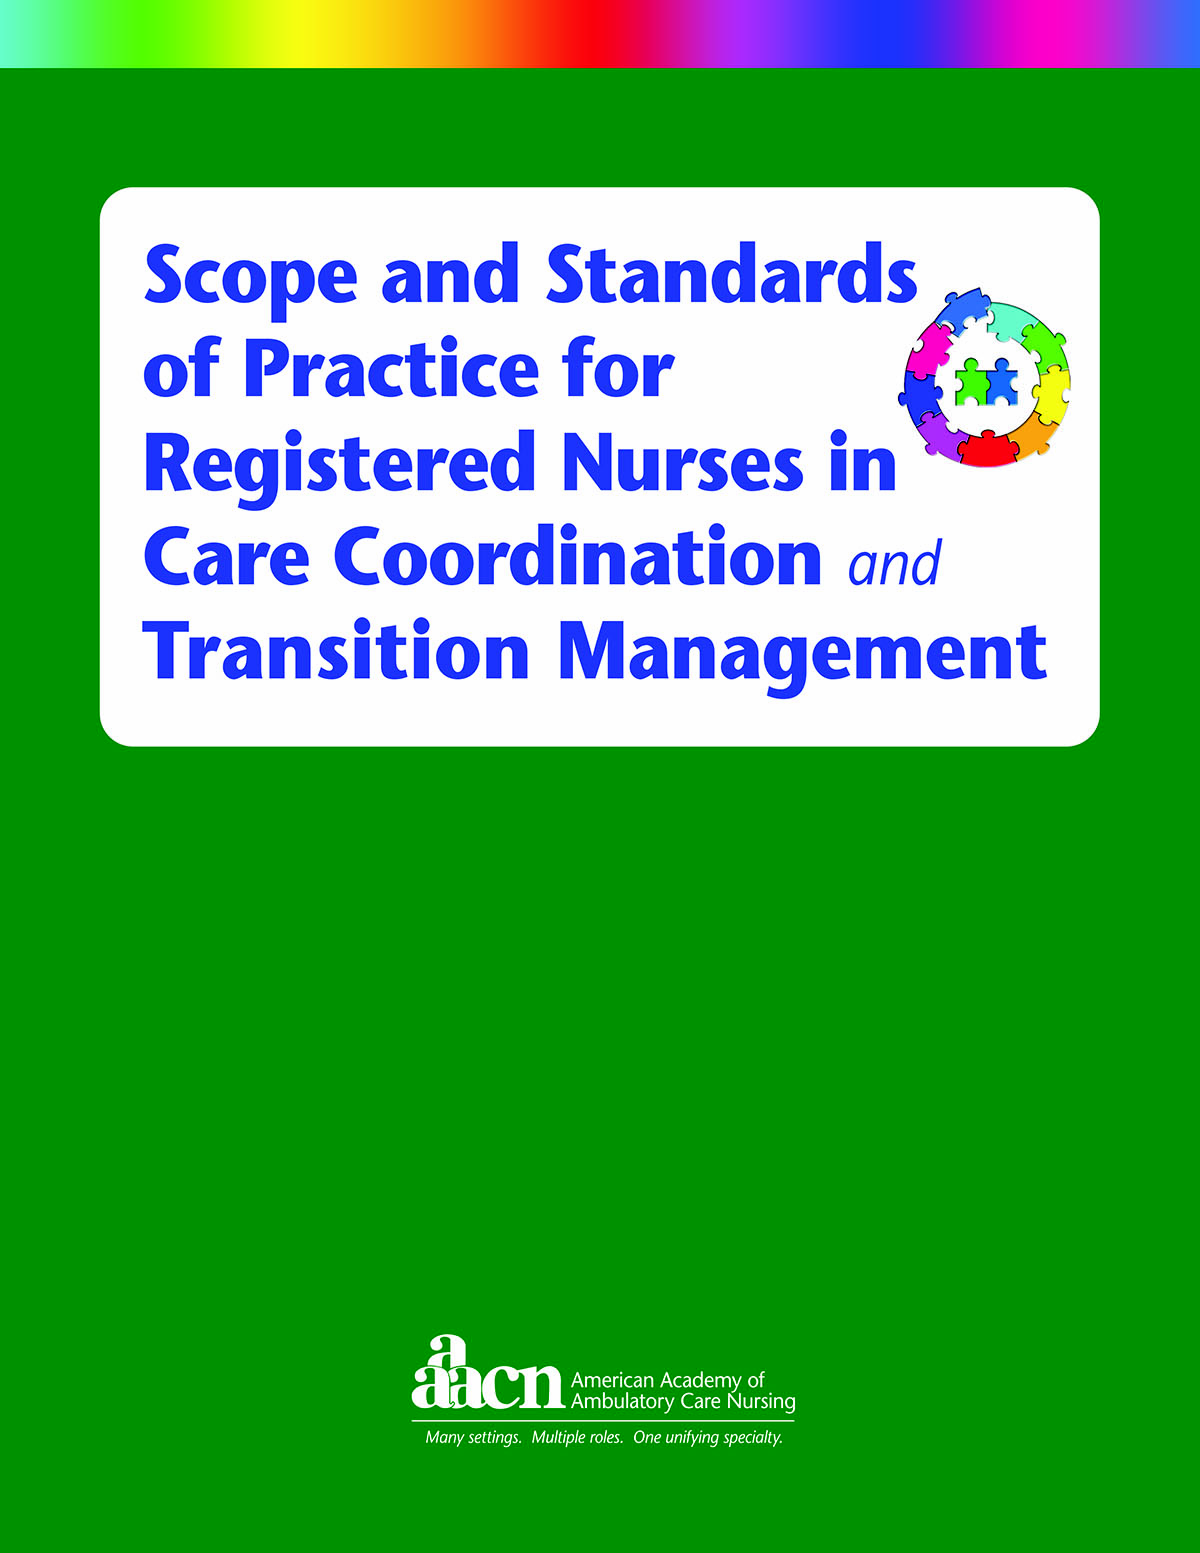 Scope And Standards Of Practice For Registered Nurses In Care